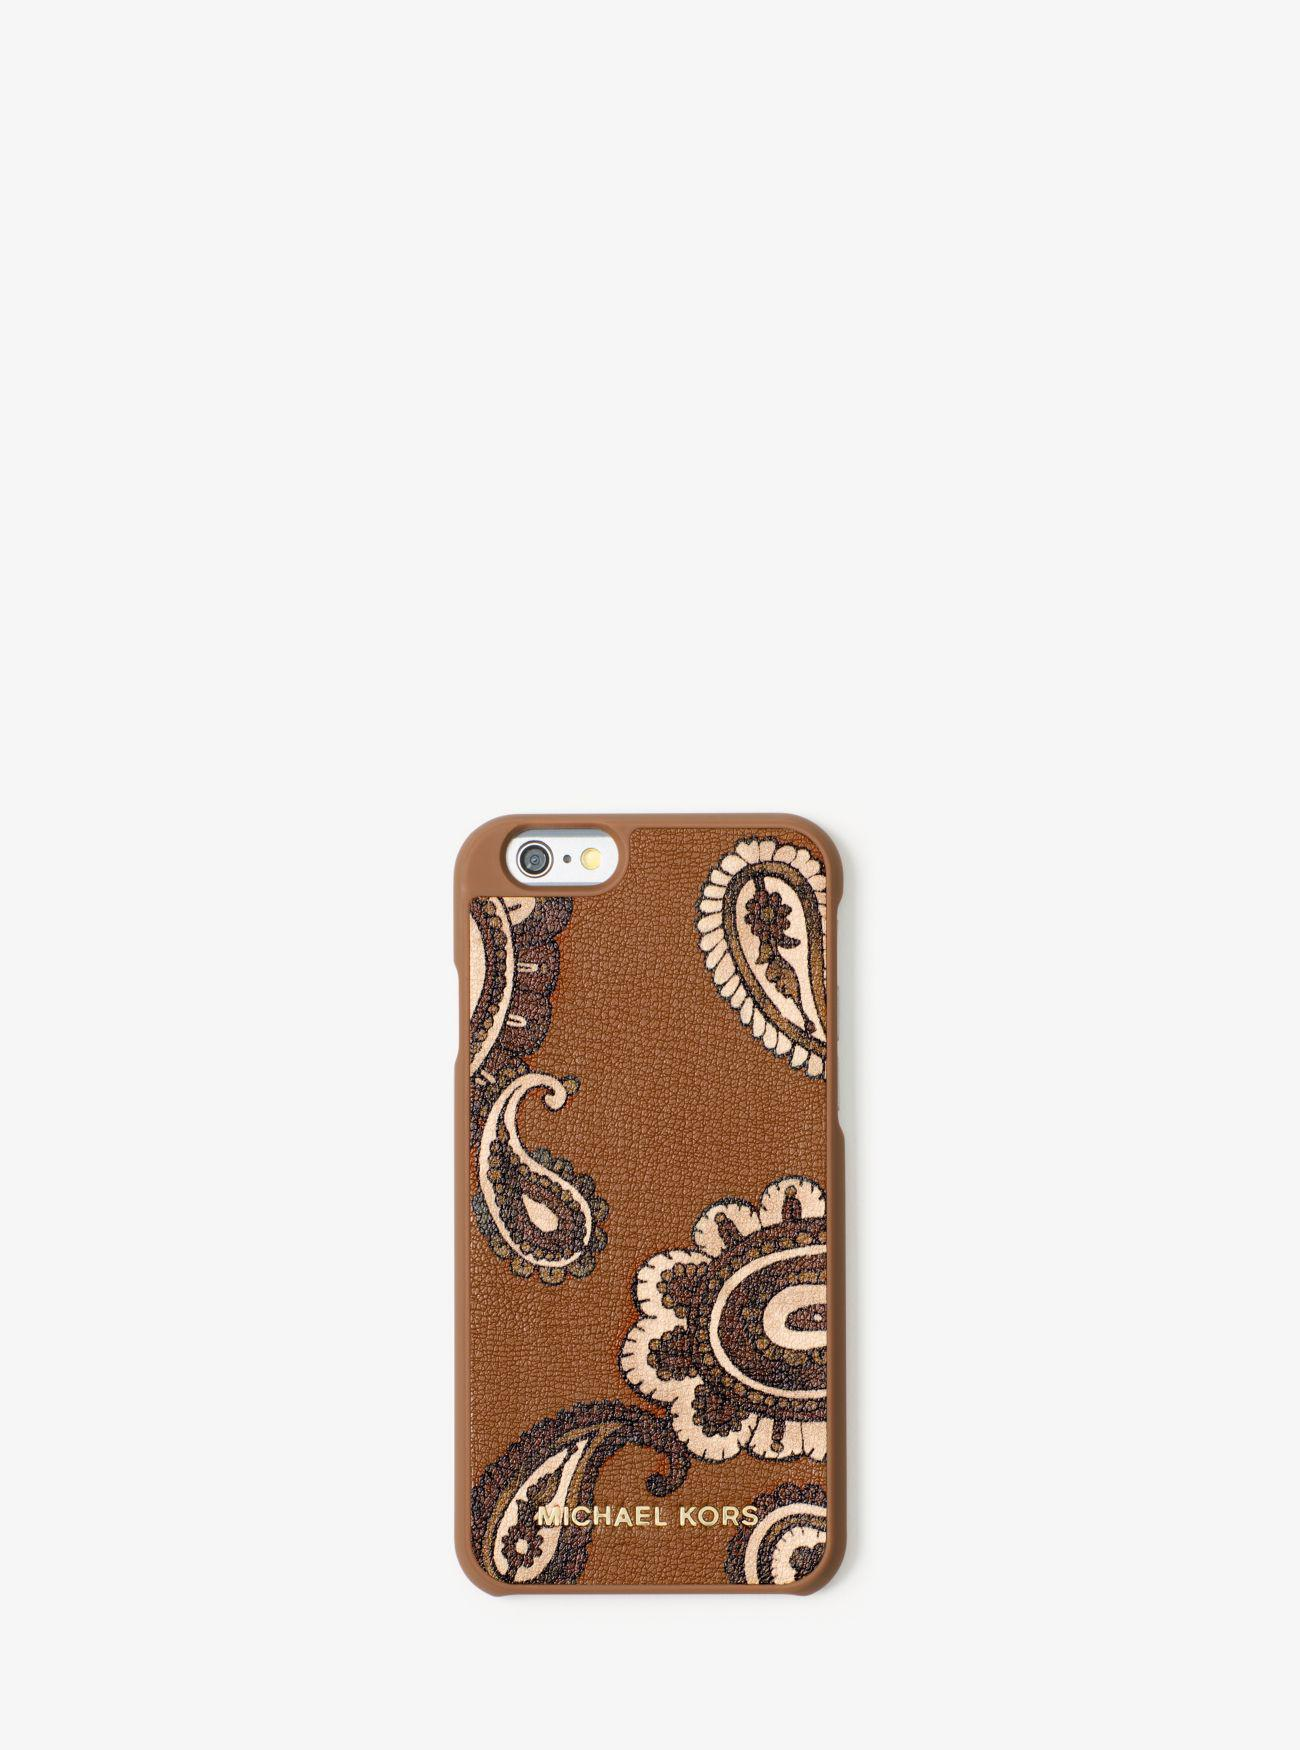 5a8d94ee33b4bb Lyst - Michael Kors Jet Set Travel Leather Phone Case For Iphone 6/6s